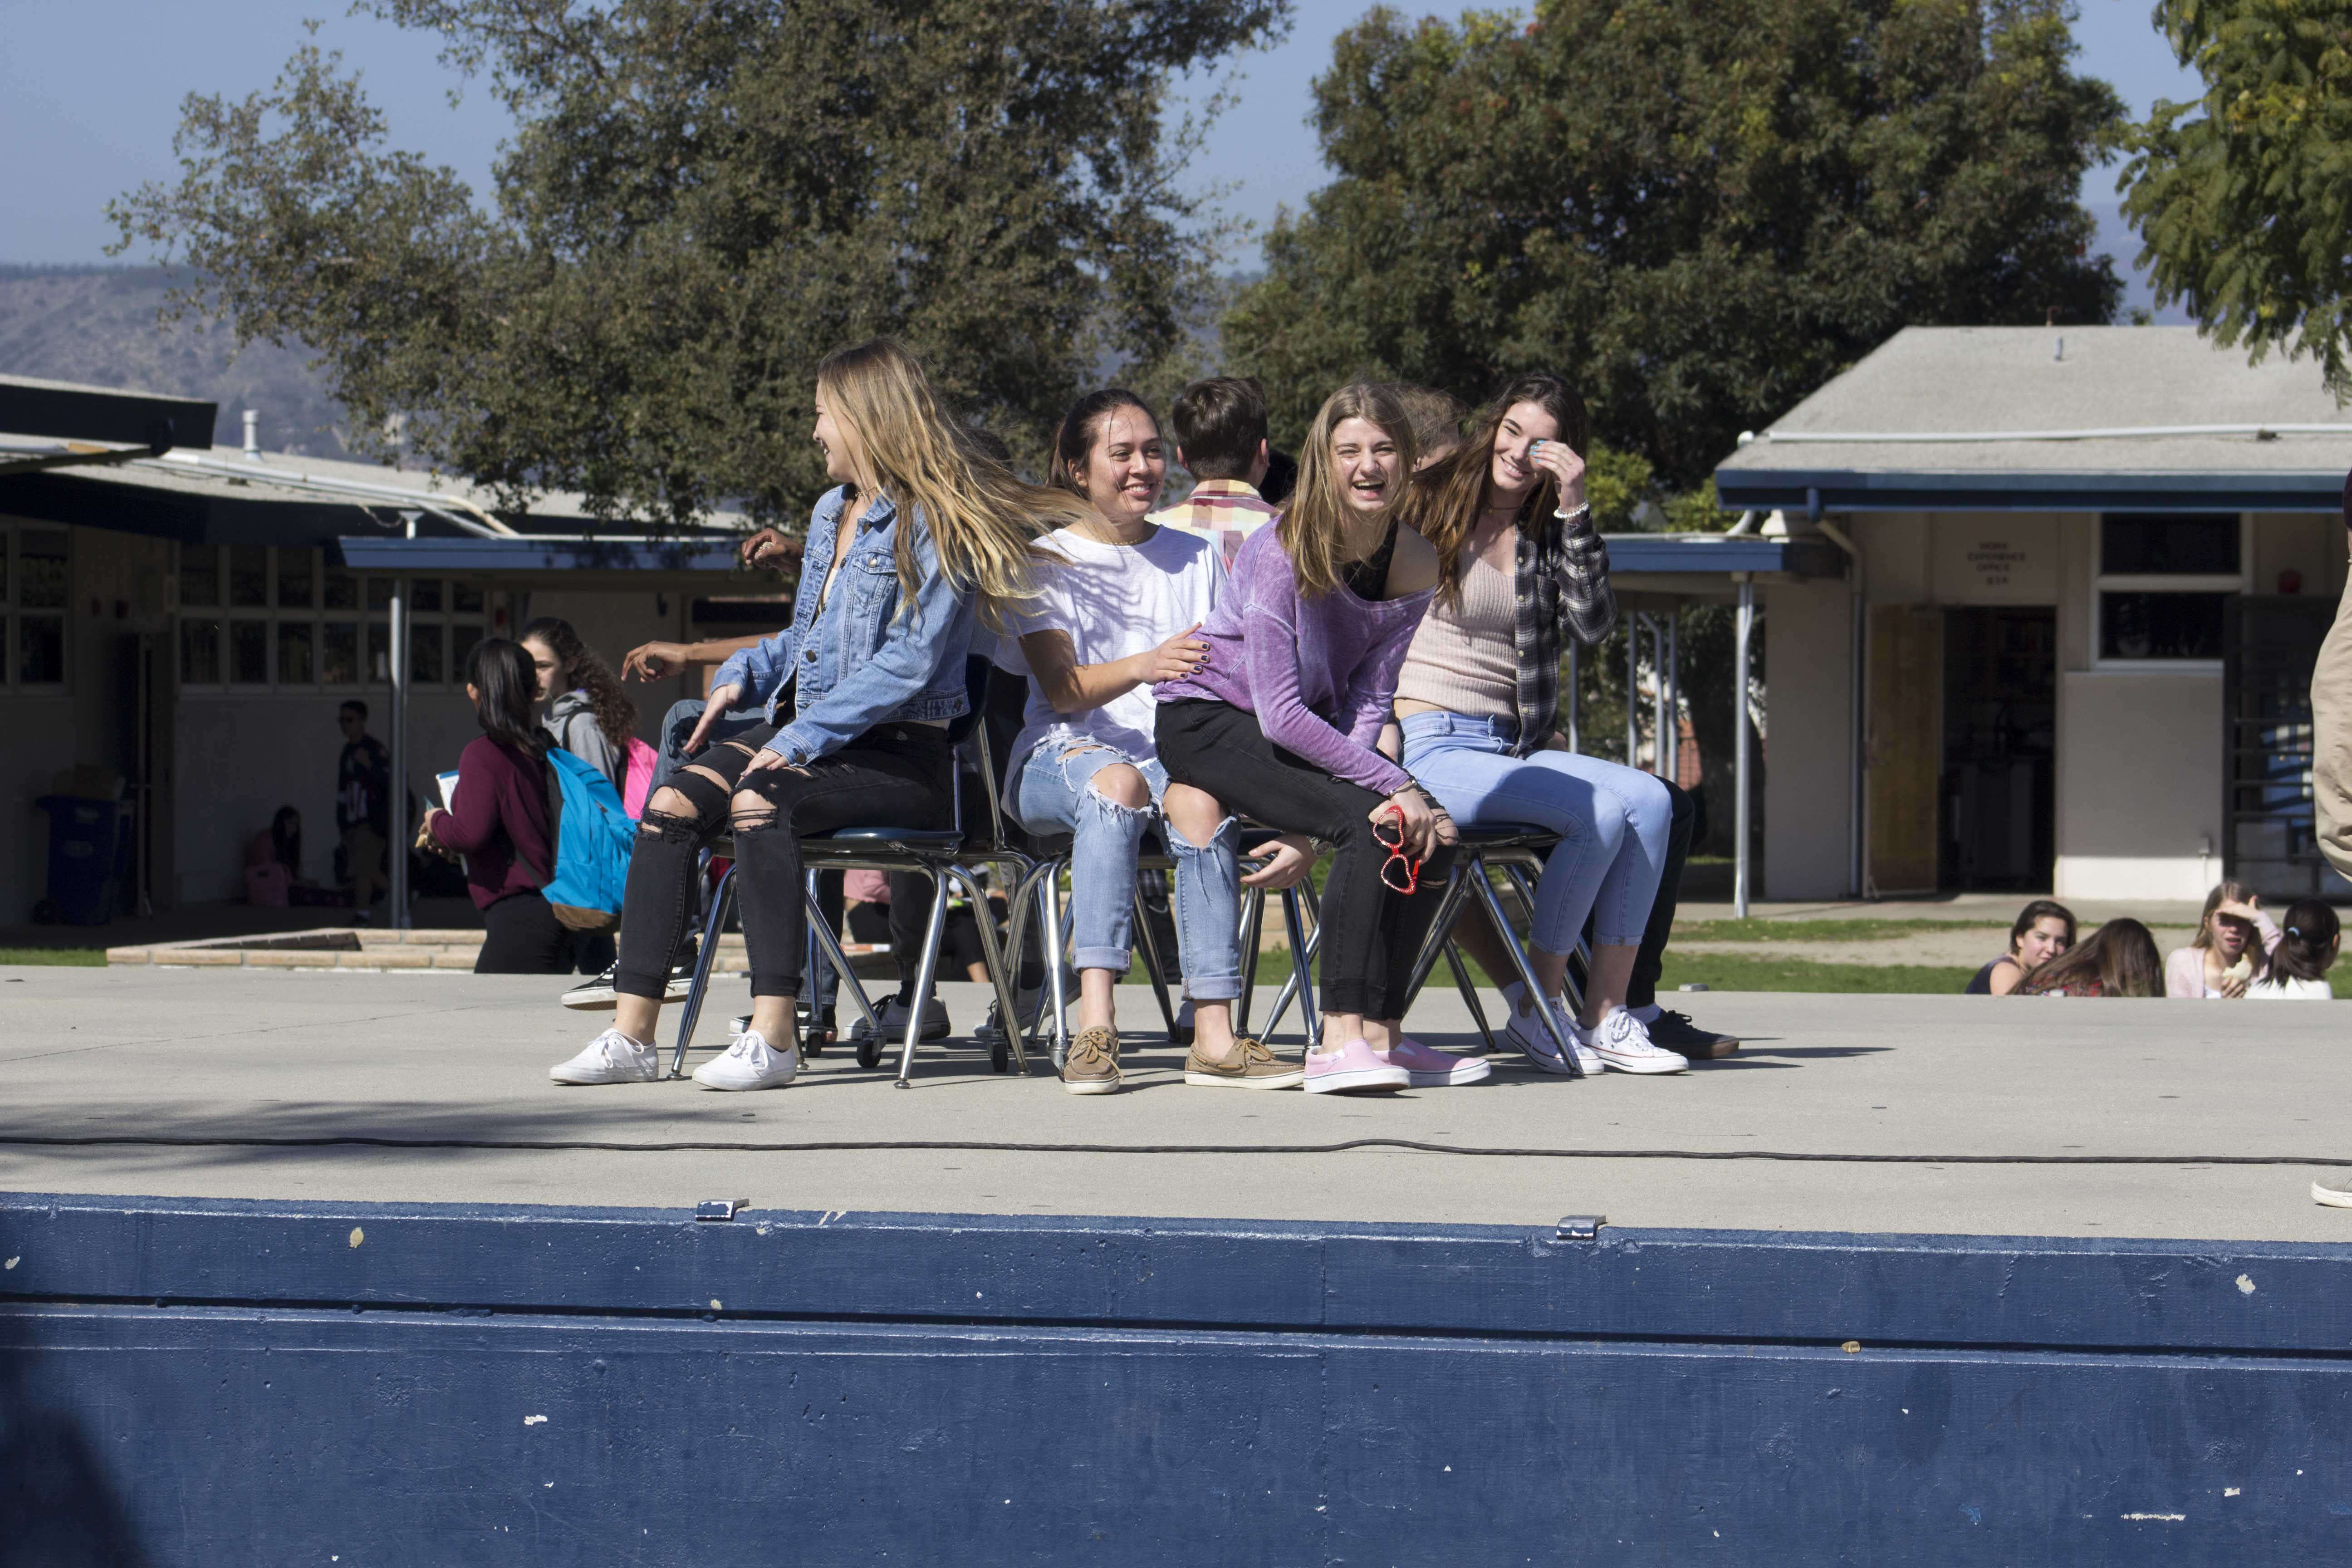 Melodie Truchi sitting on Karina Duffy (sophomores) while rushing for a spot during musical chairs.